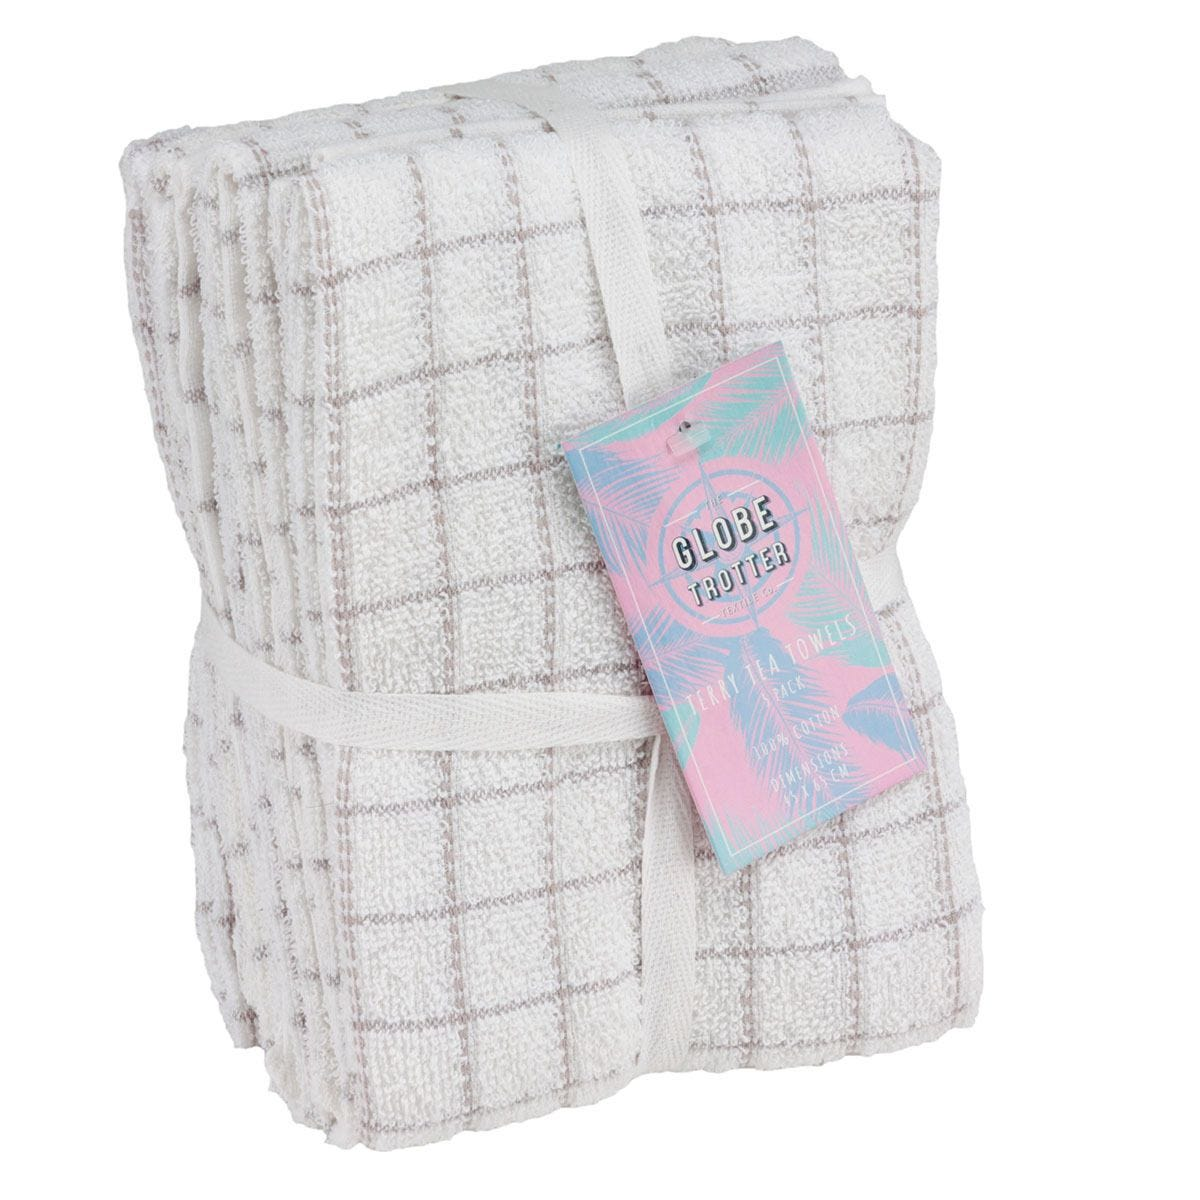 Globetrotter Terry Tea Towels Pack of 5 - Light Grey